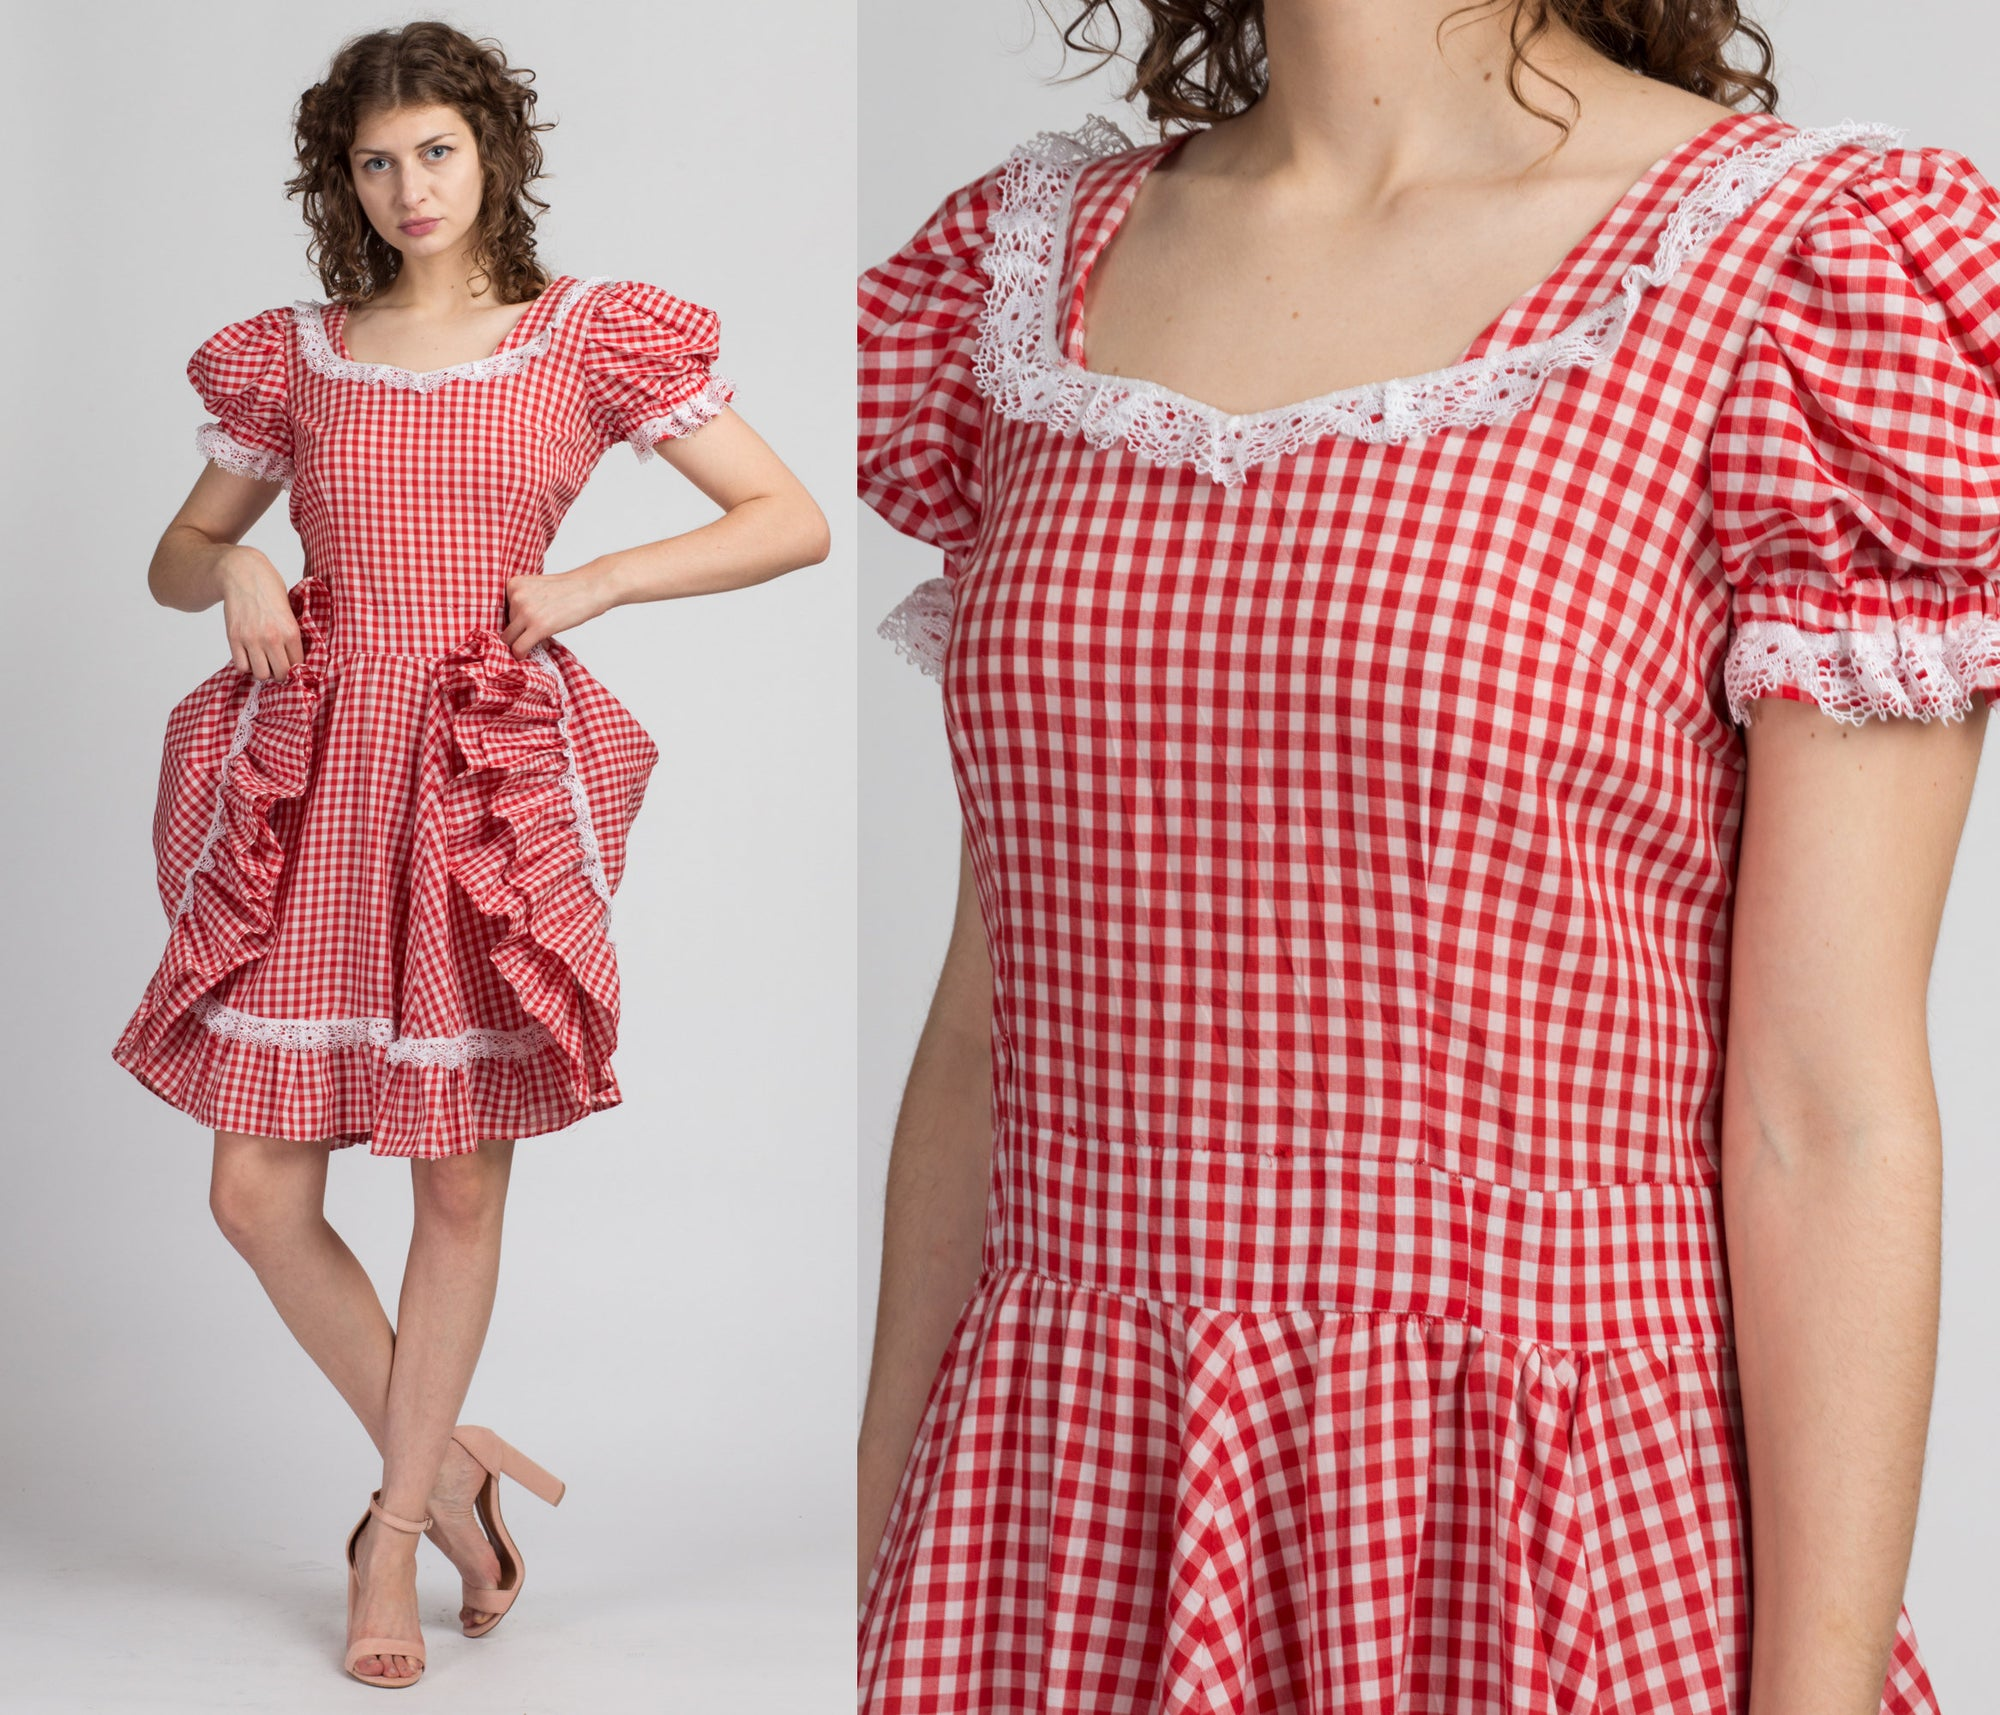 Vintage Gingham Puff Sleeve Rockabilly Dress - Large